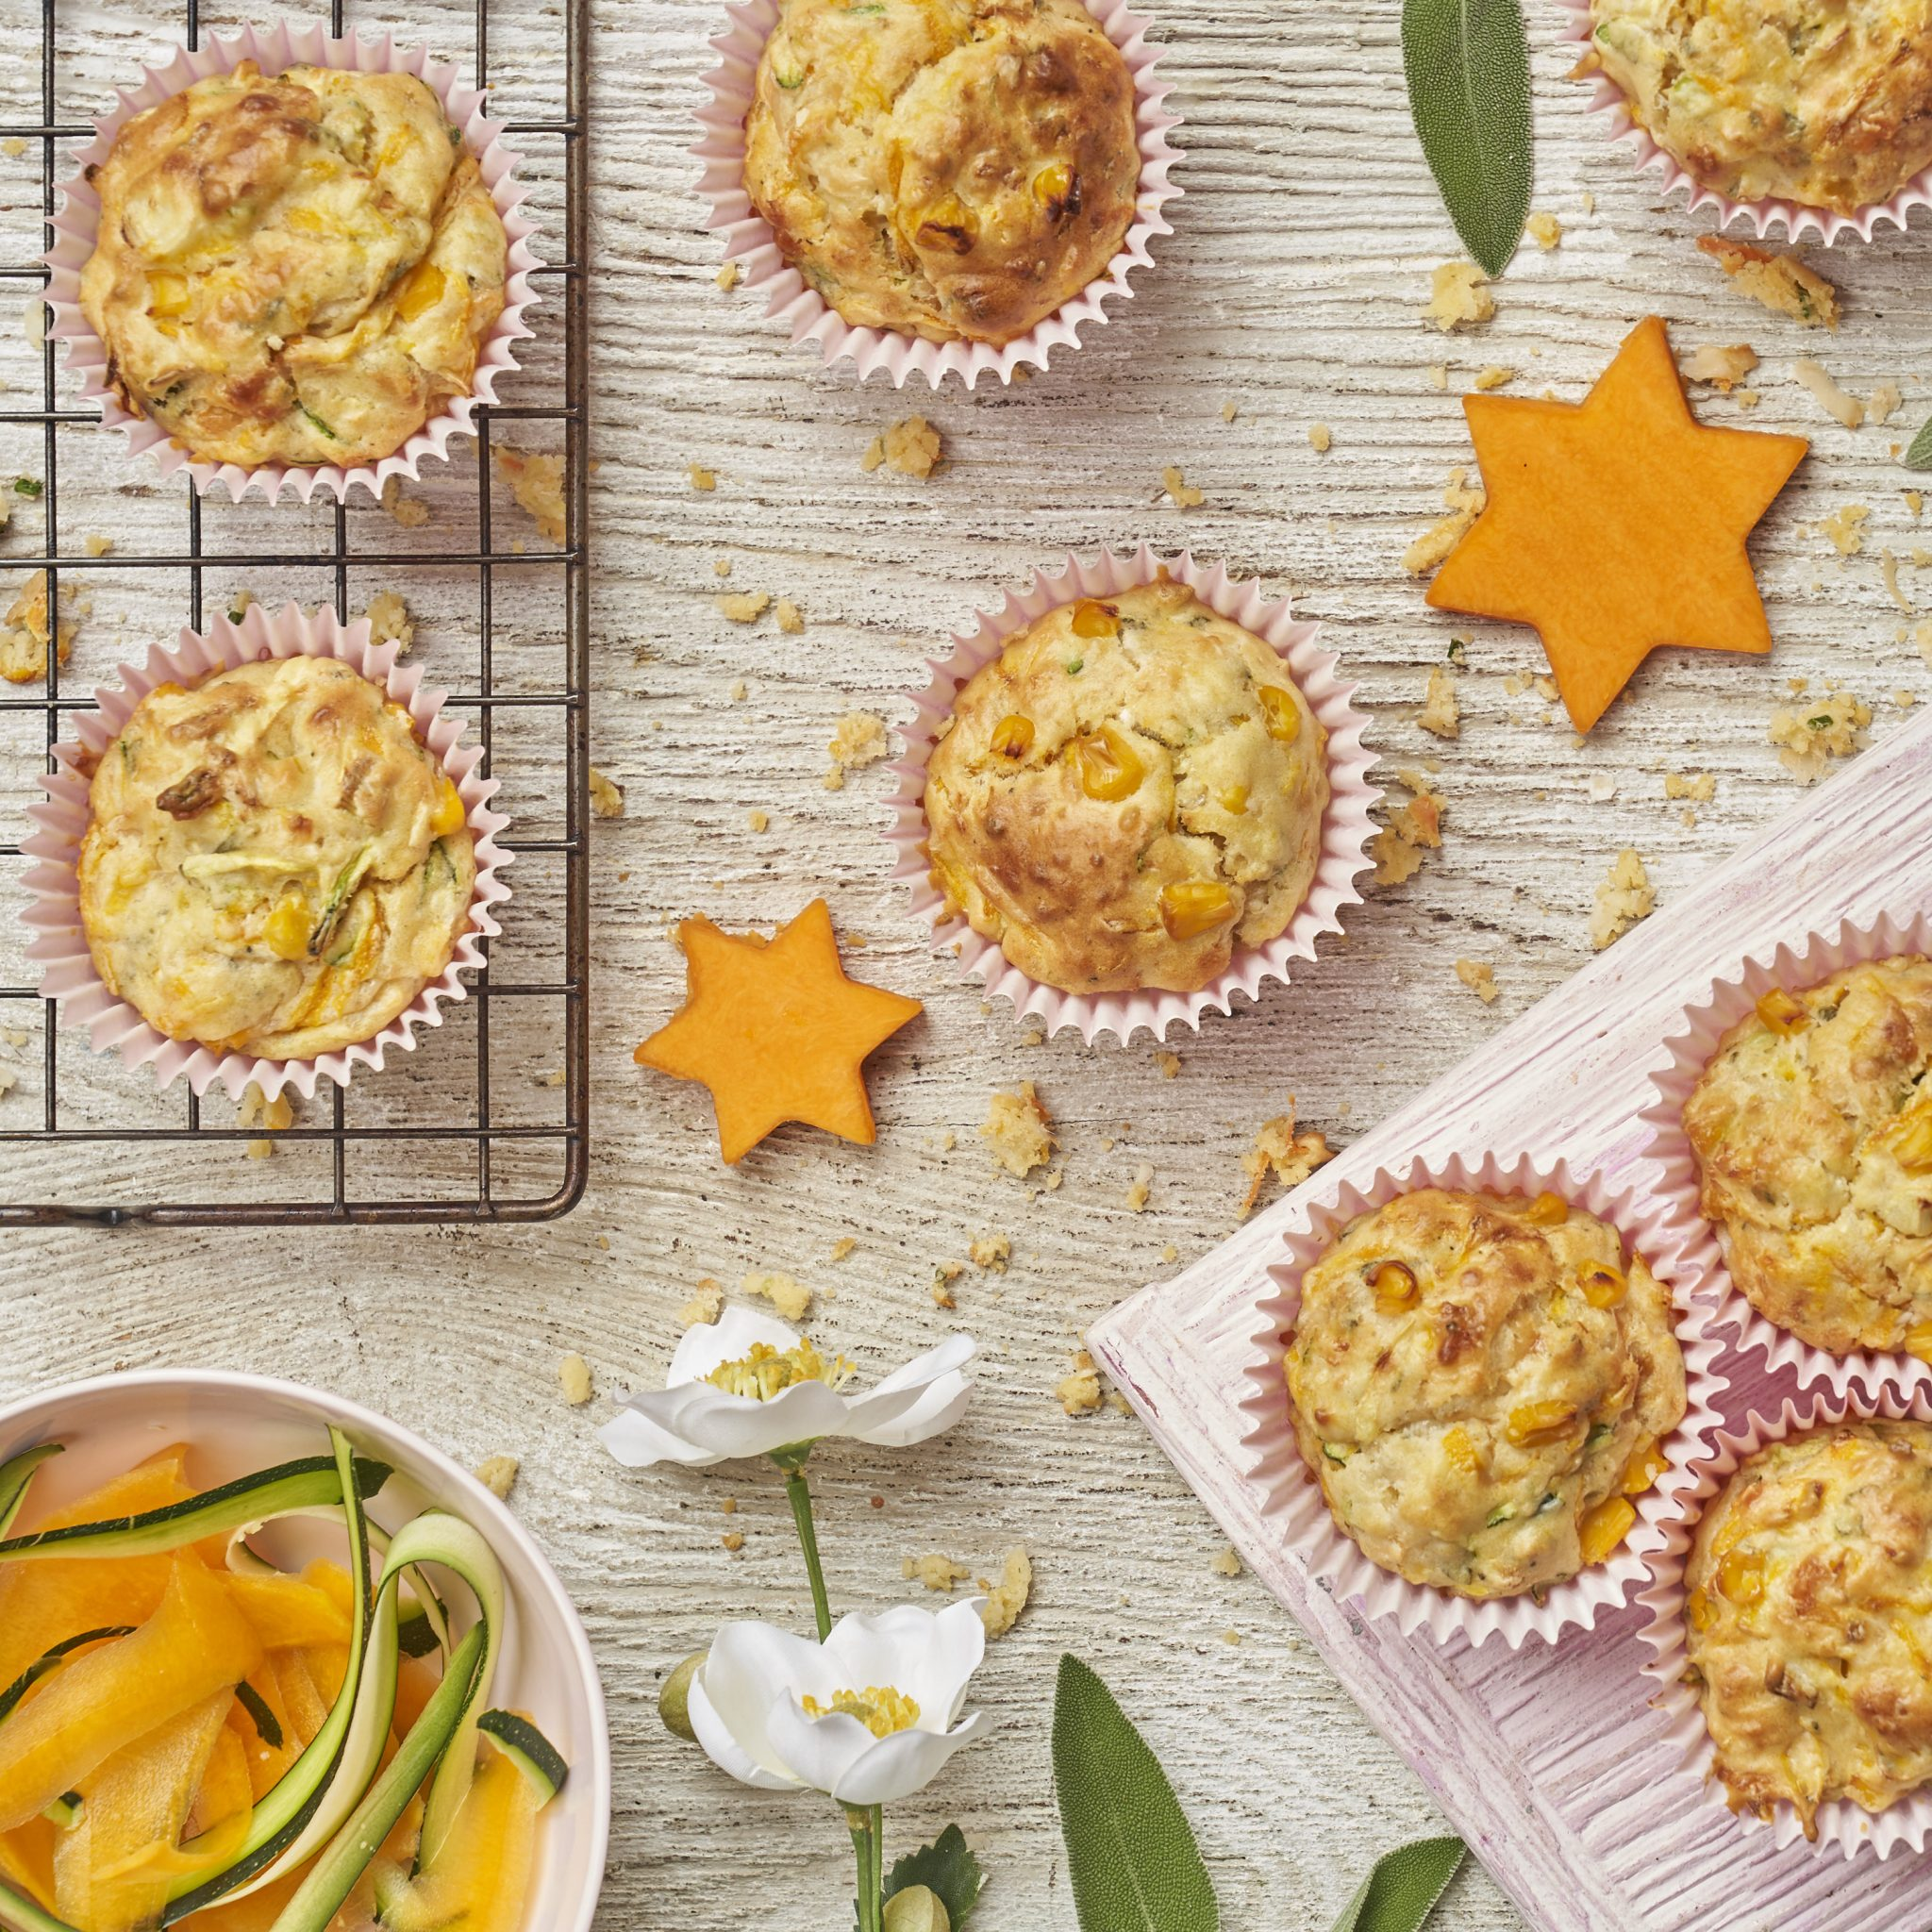 carrot and cheese muffins recipe by Annabel Karmel